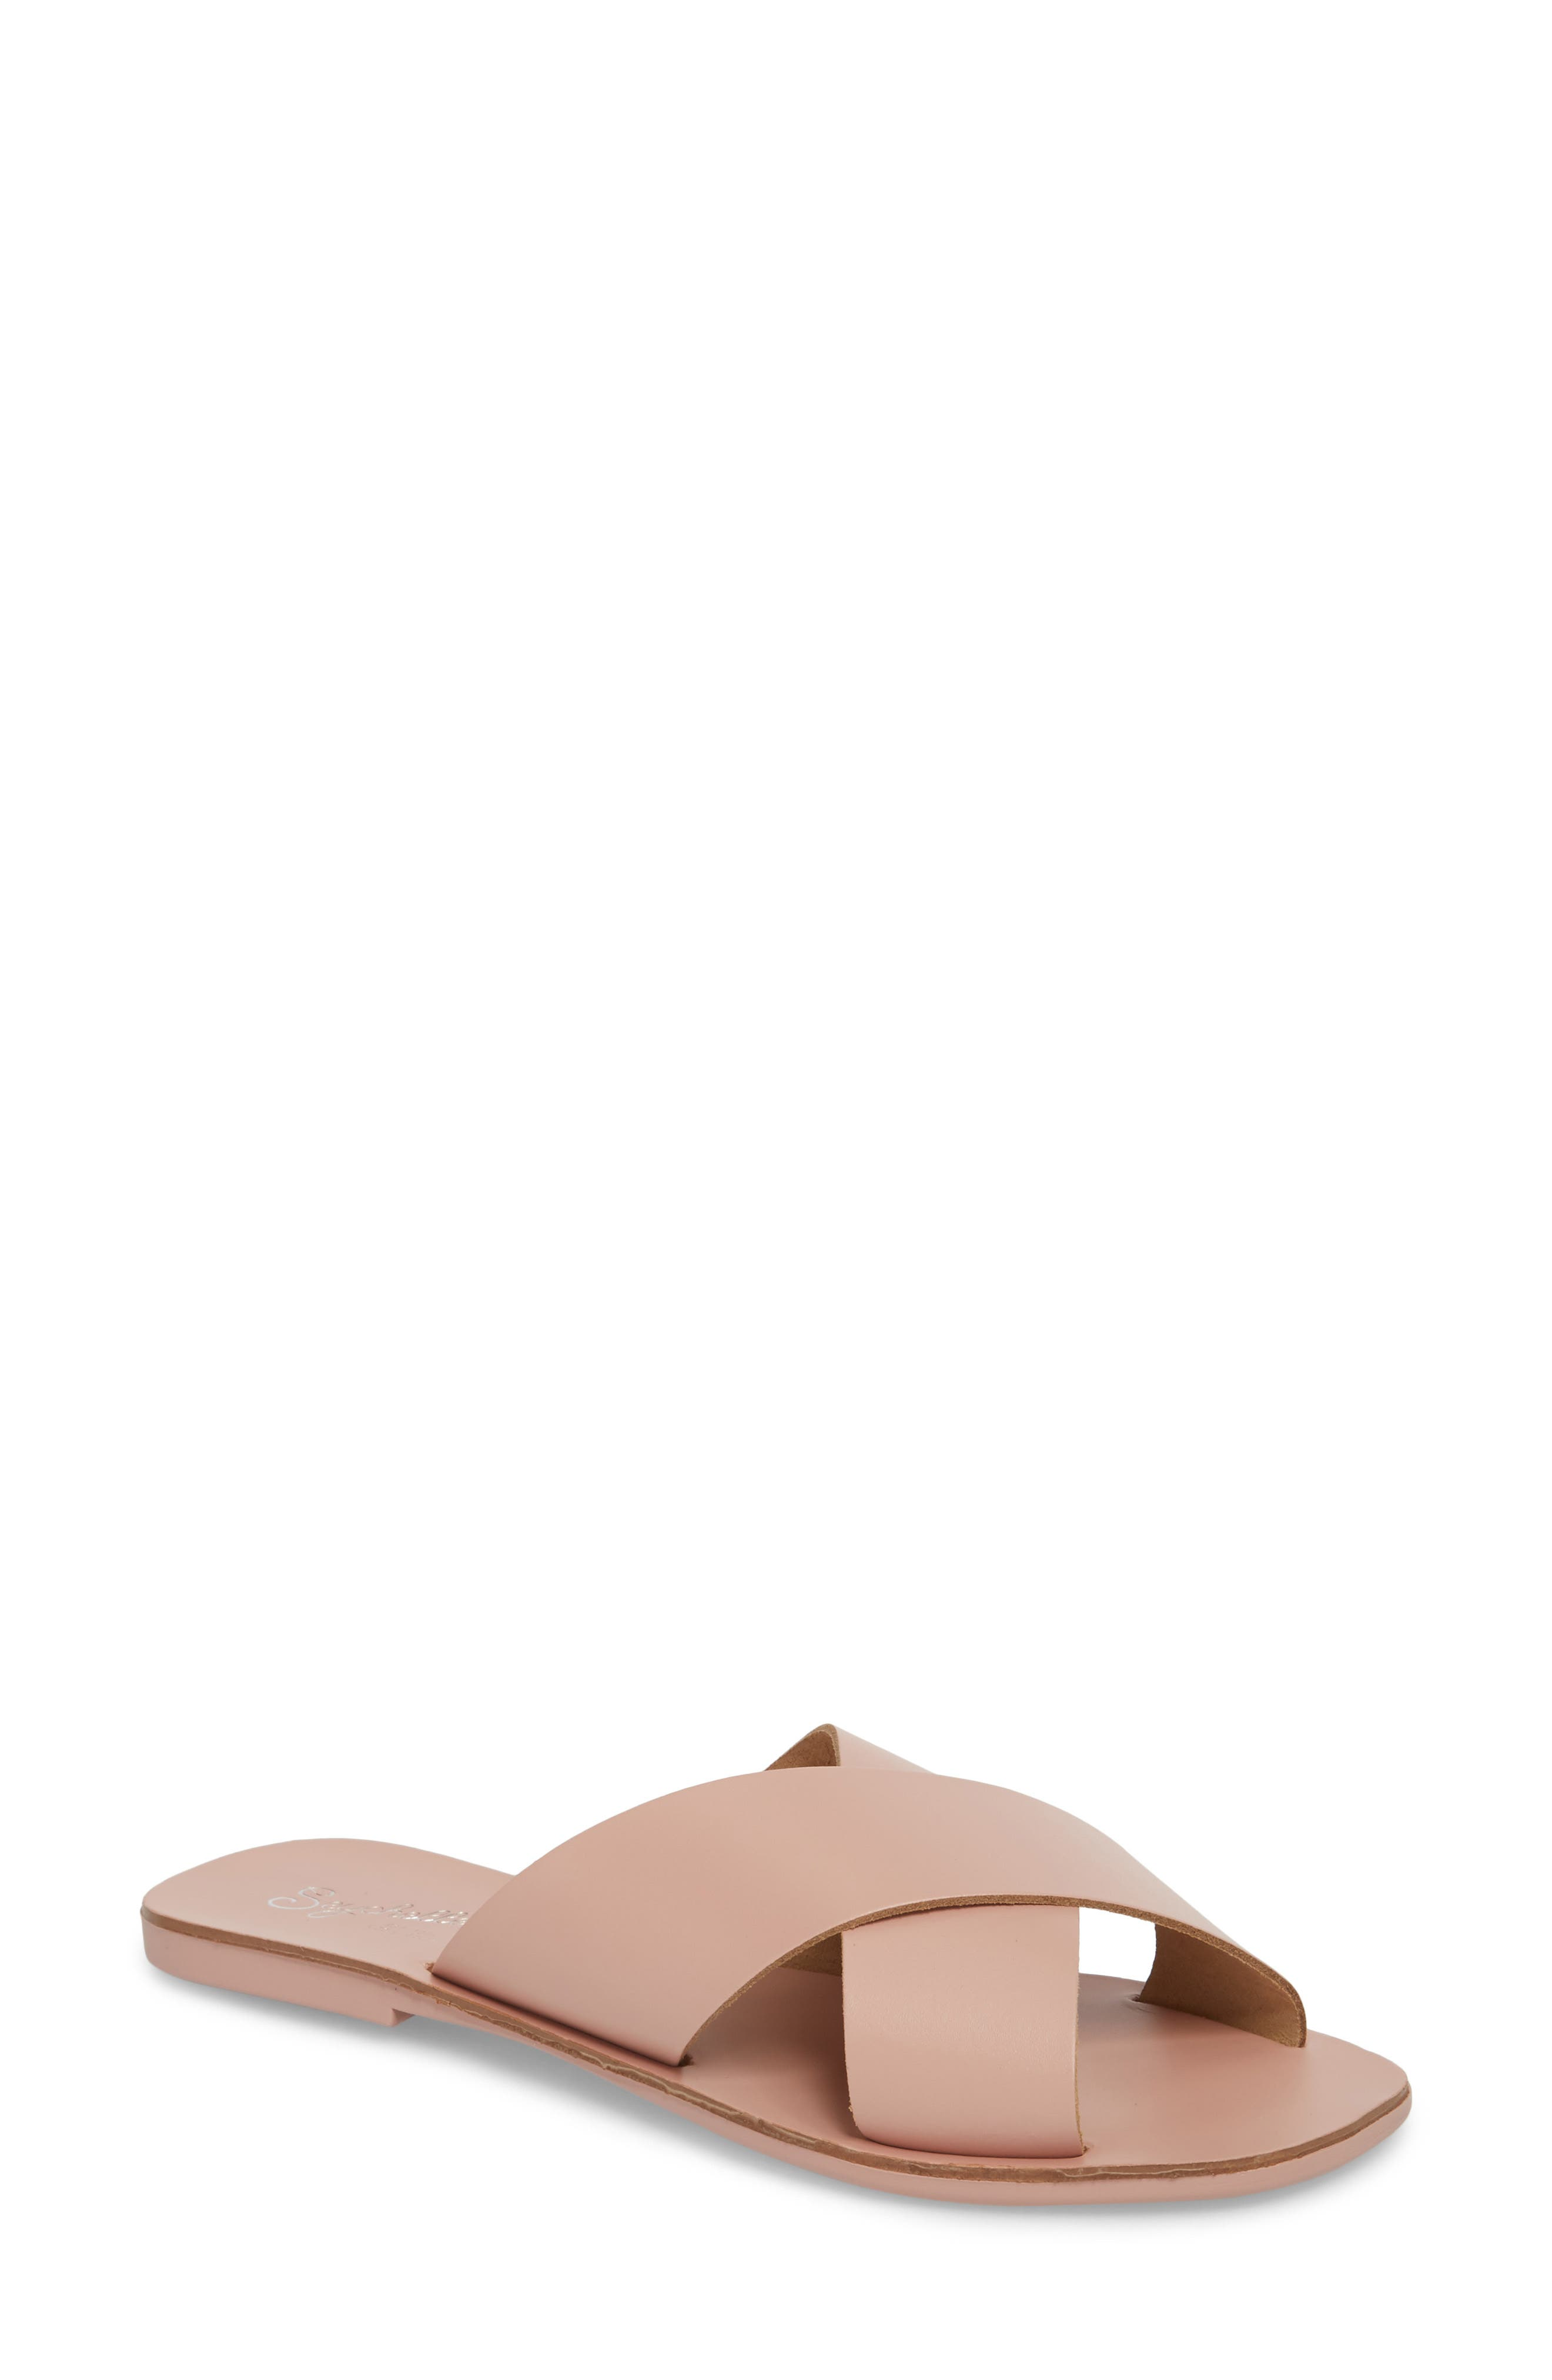 Total Relaxation Slide Sandal,                             Main thumbnail 1, color,                             Pink Leather